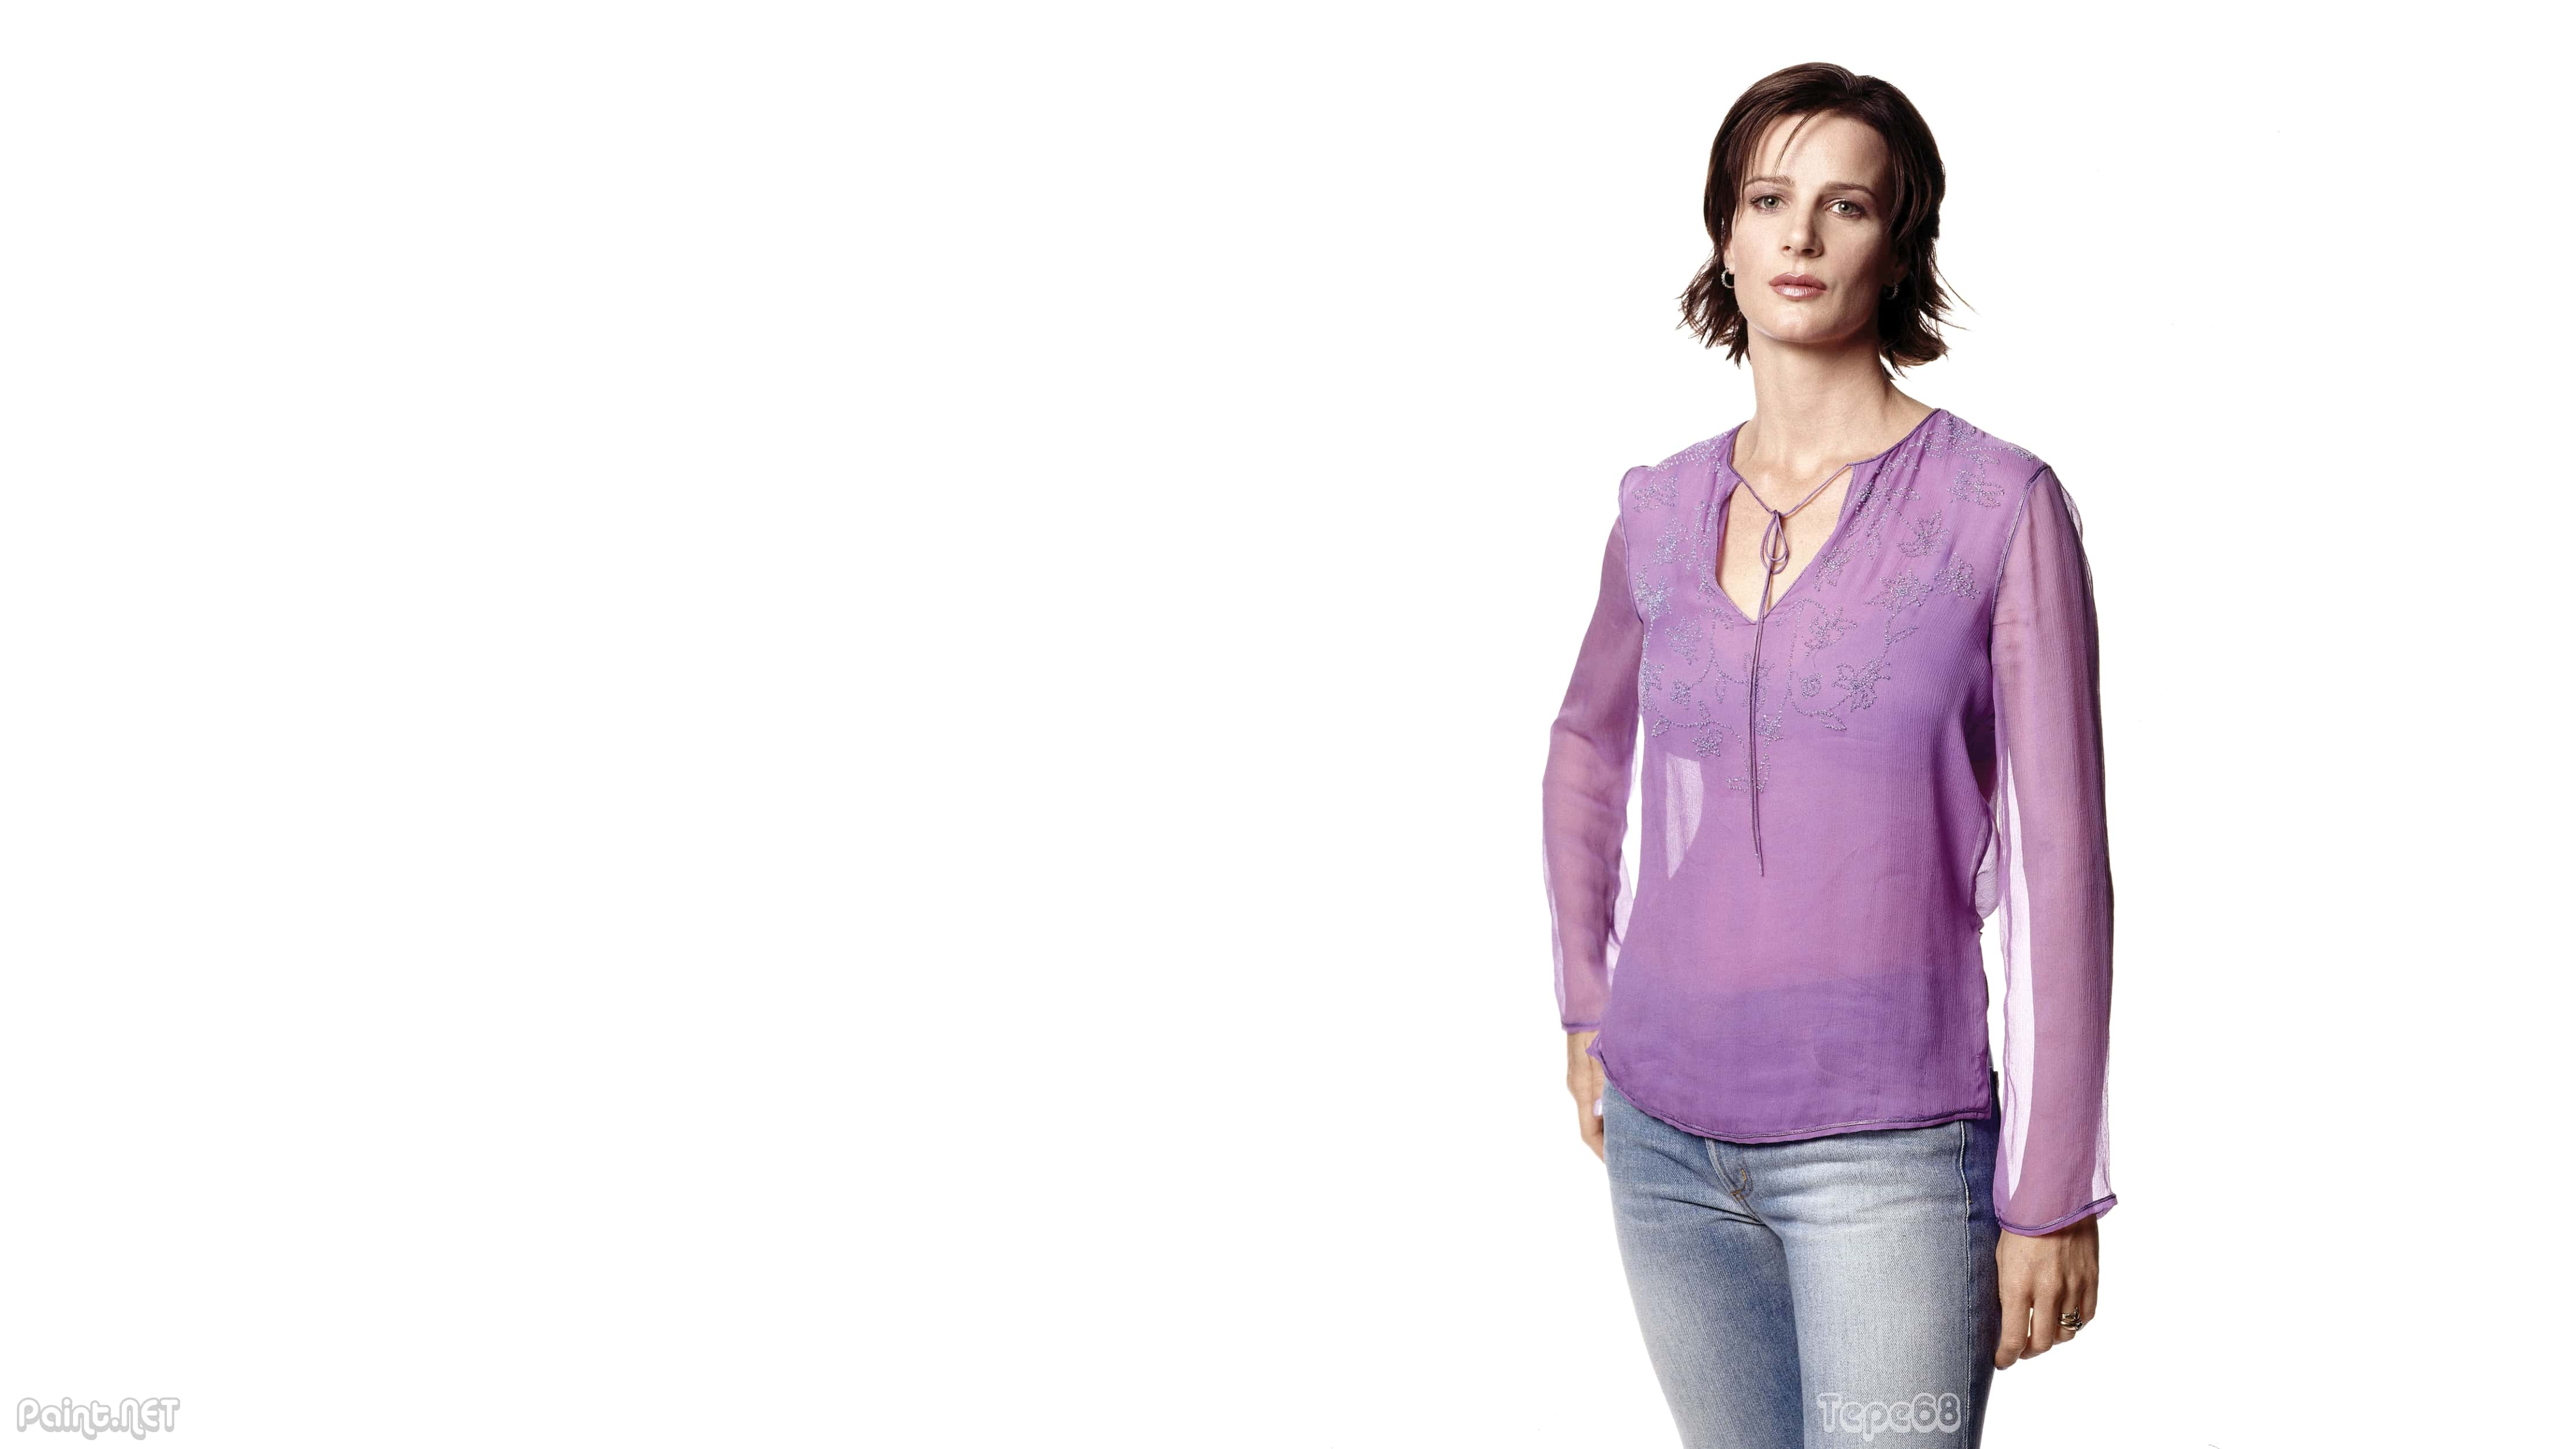 Rachel Griffiths widescreen wallpapers